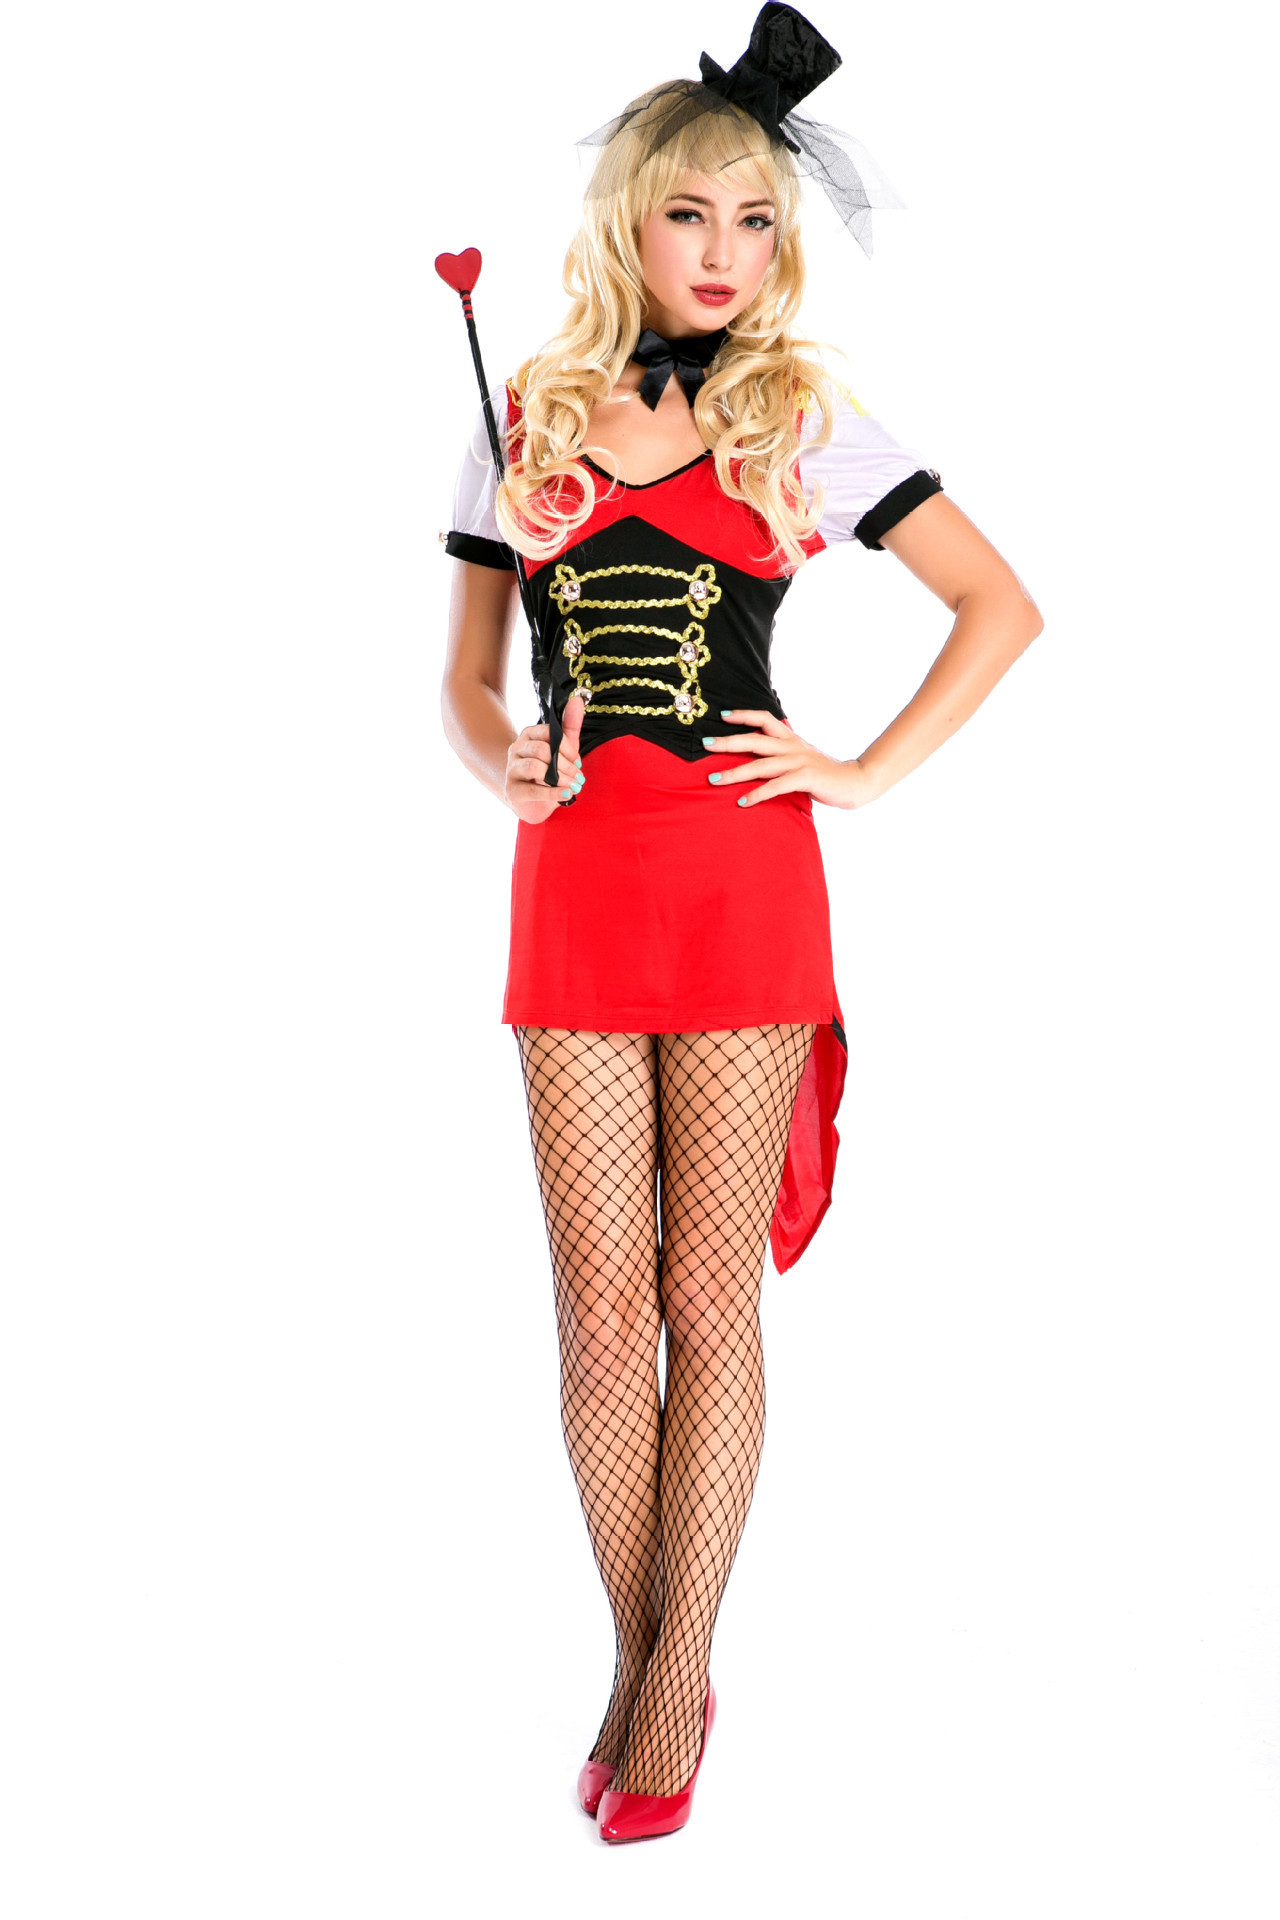 Compare Prices on Ladies Costumes Halloween- Online Shopping/Buy ...